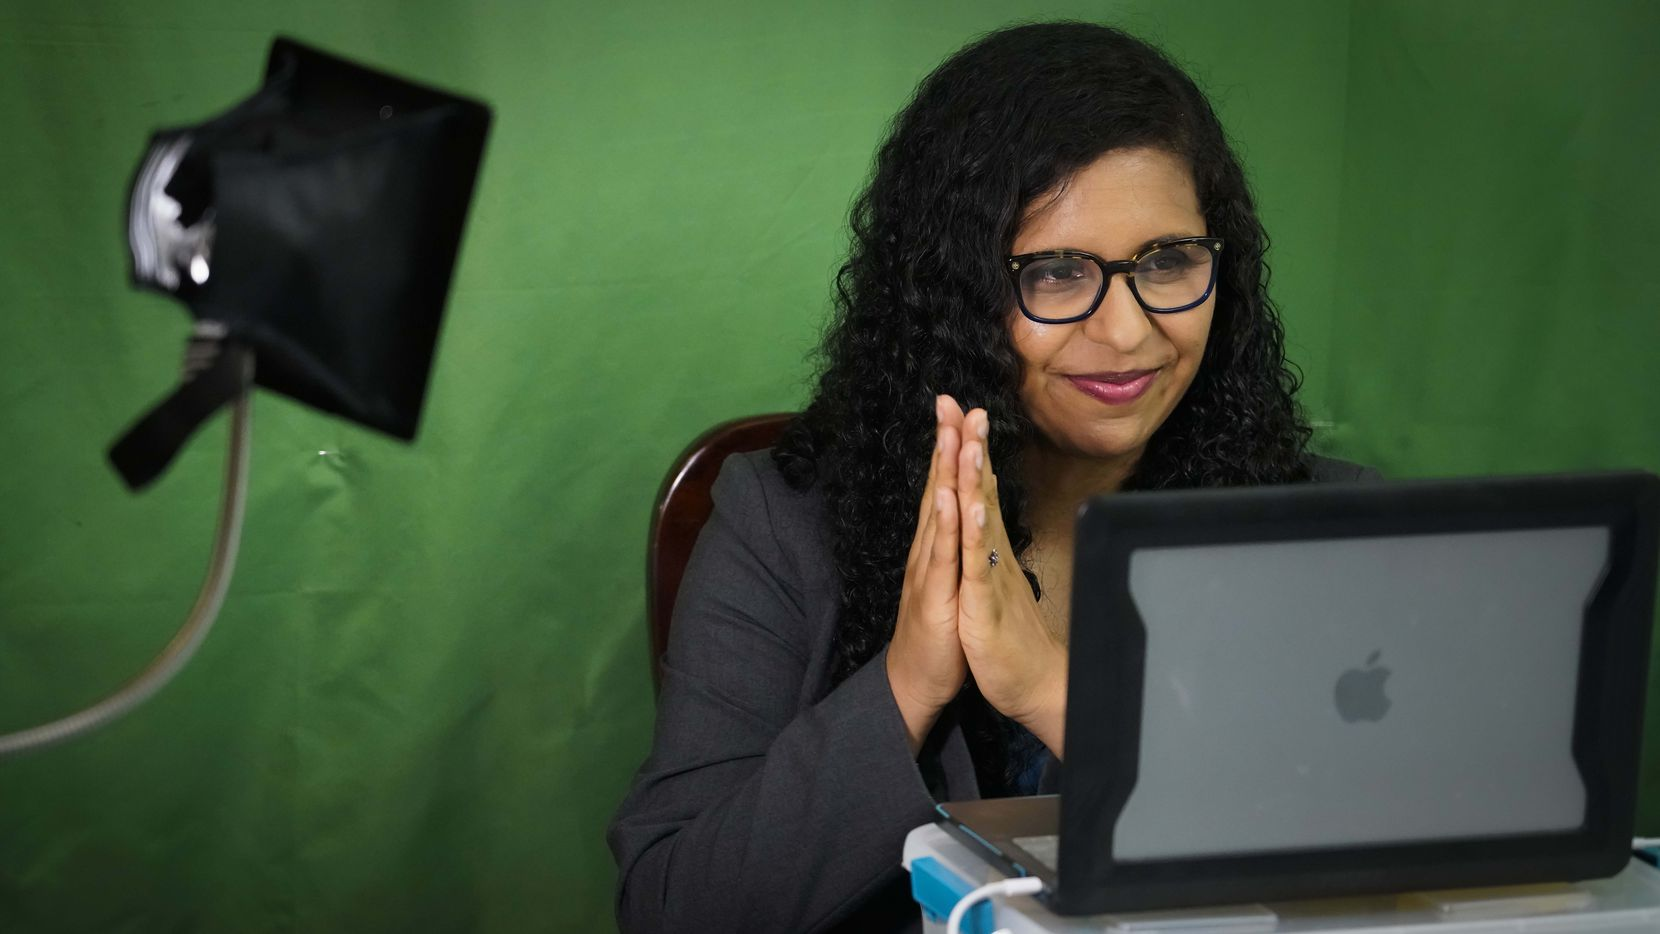 Candace Valenzuela, held a virtual fundraiser from her dining room table on Wednesday, June 24, 2020, in Dallas. Valenzuela beat Kim Olson in the Democratic primary runoff on July 14th. (Smiley N. Pool/The Dallas Morning News)